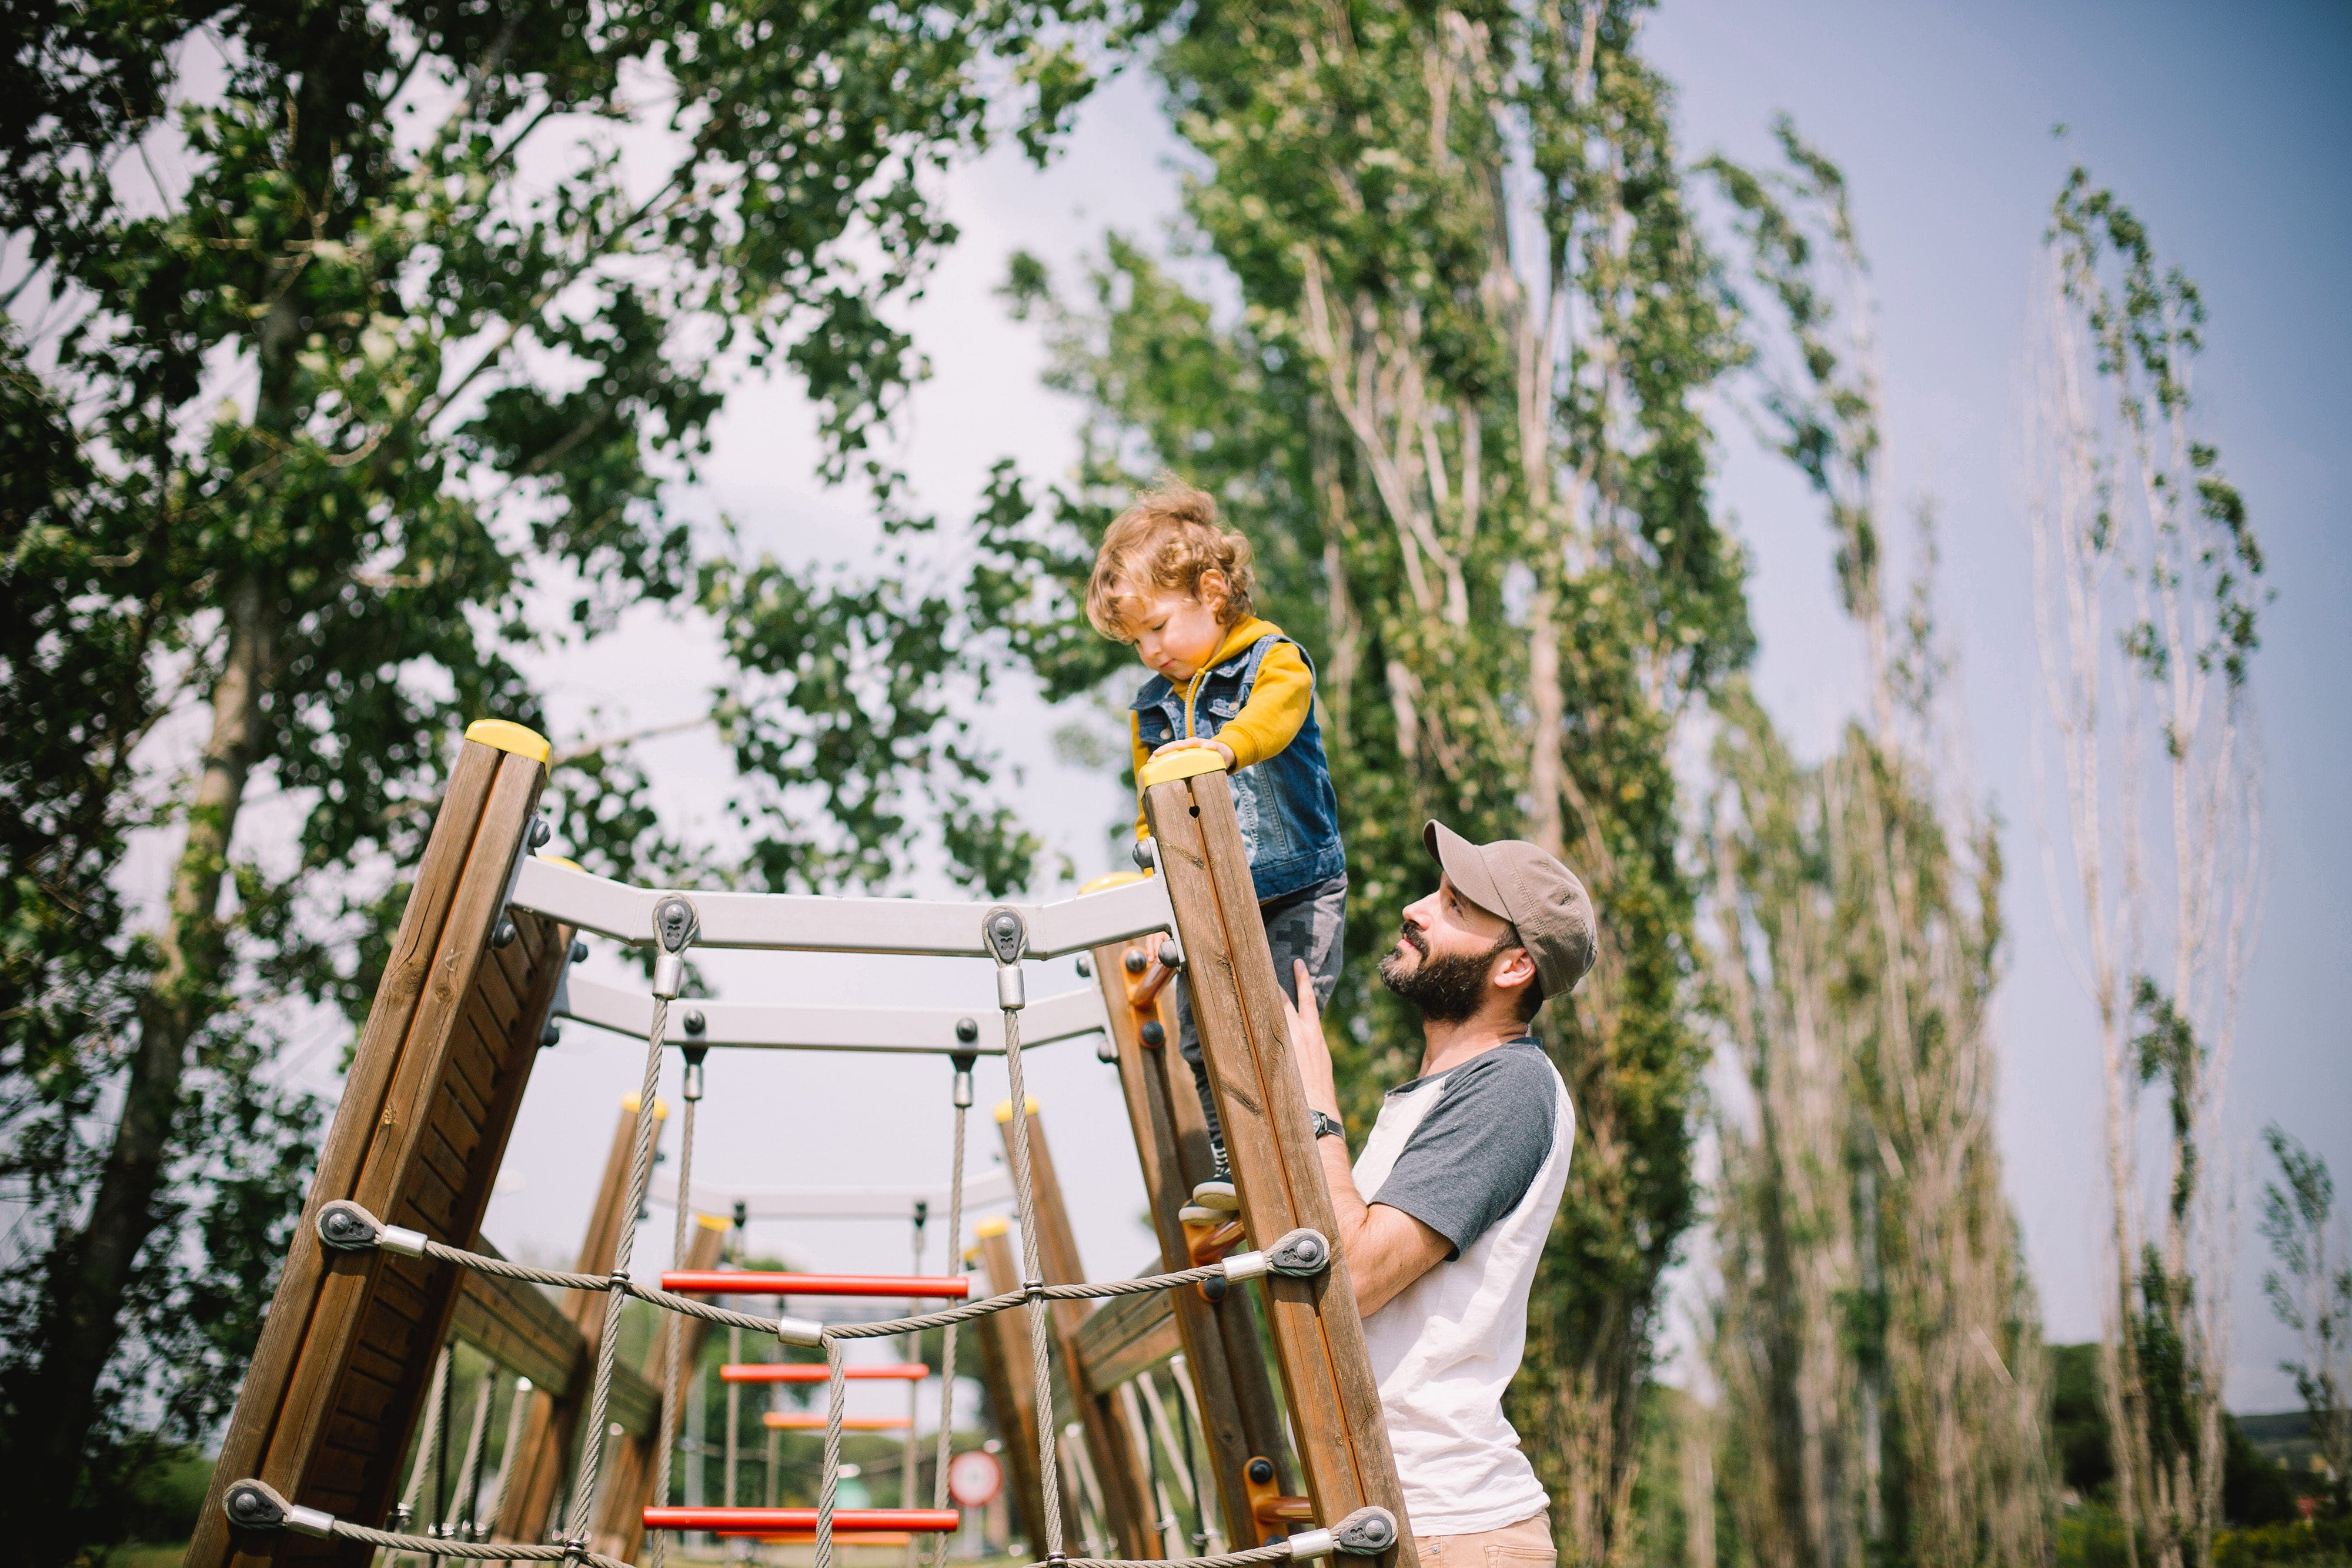 A small child scaling a climbing frame with its father at Gutovka sport center